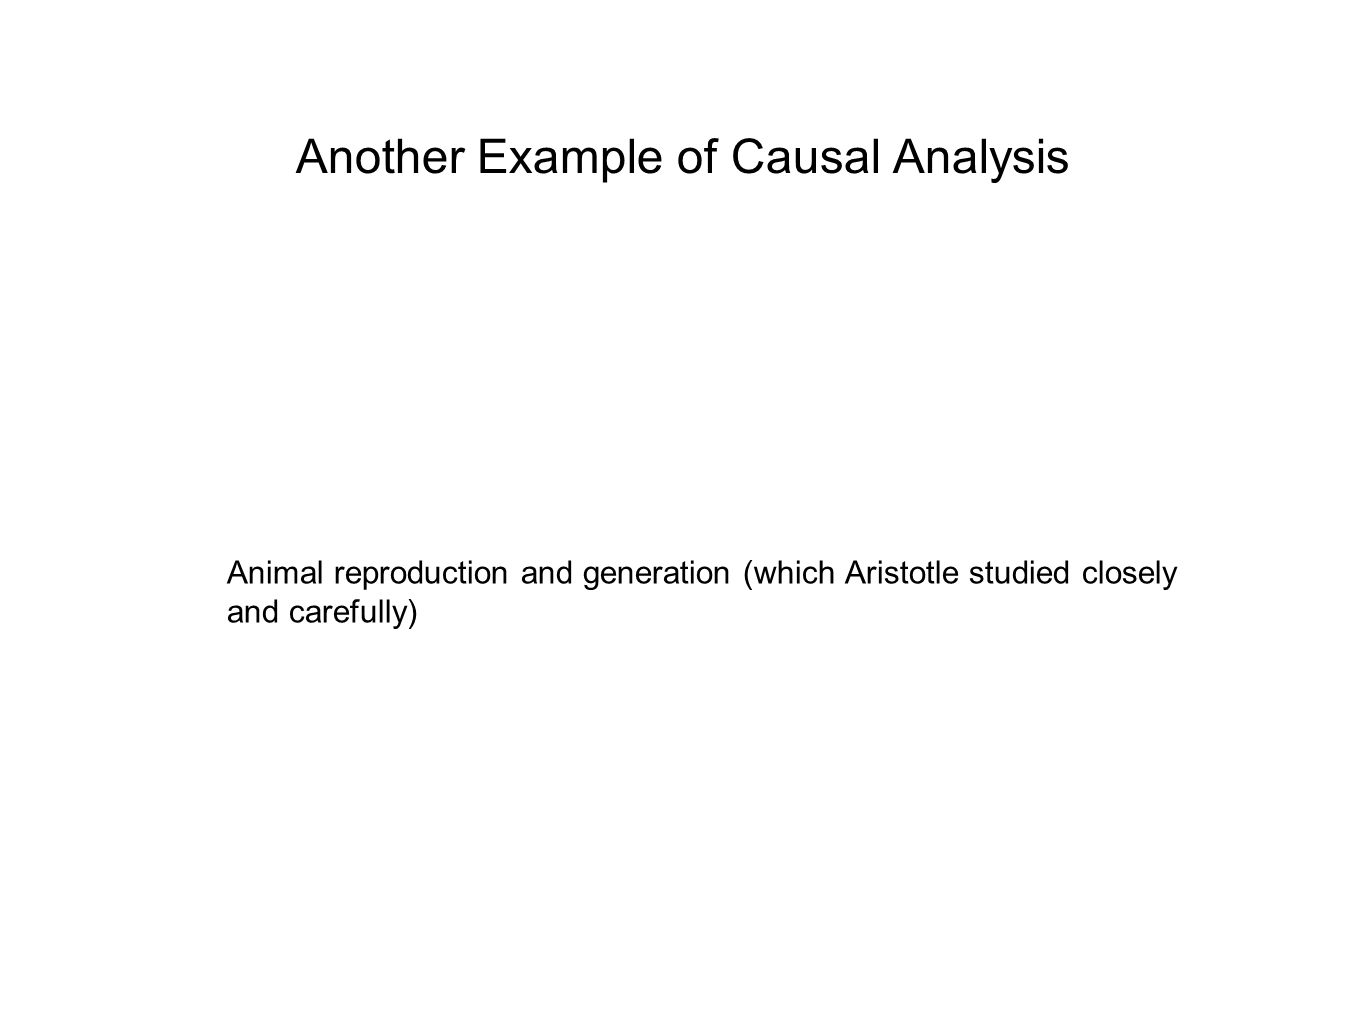 Another Example of Causal Analysis